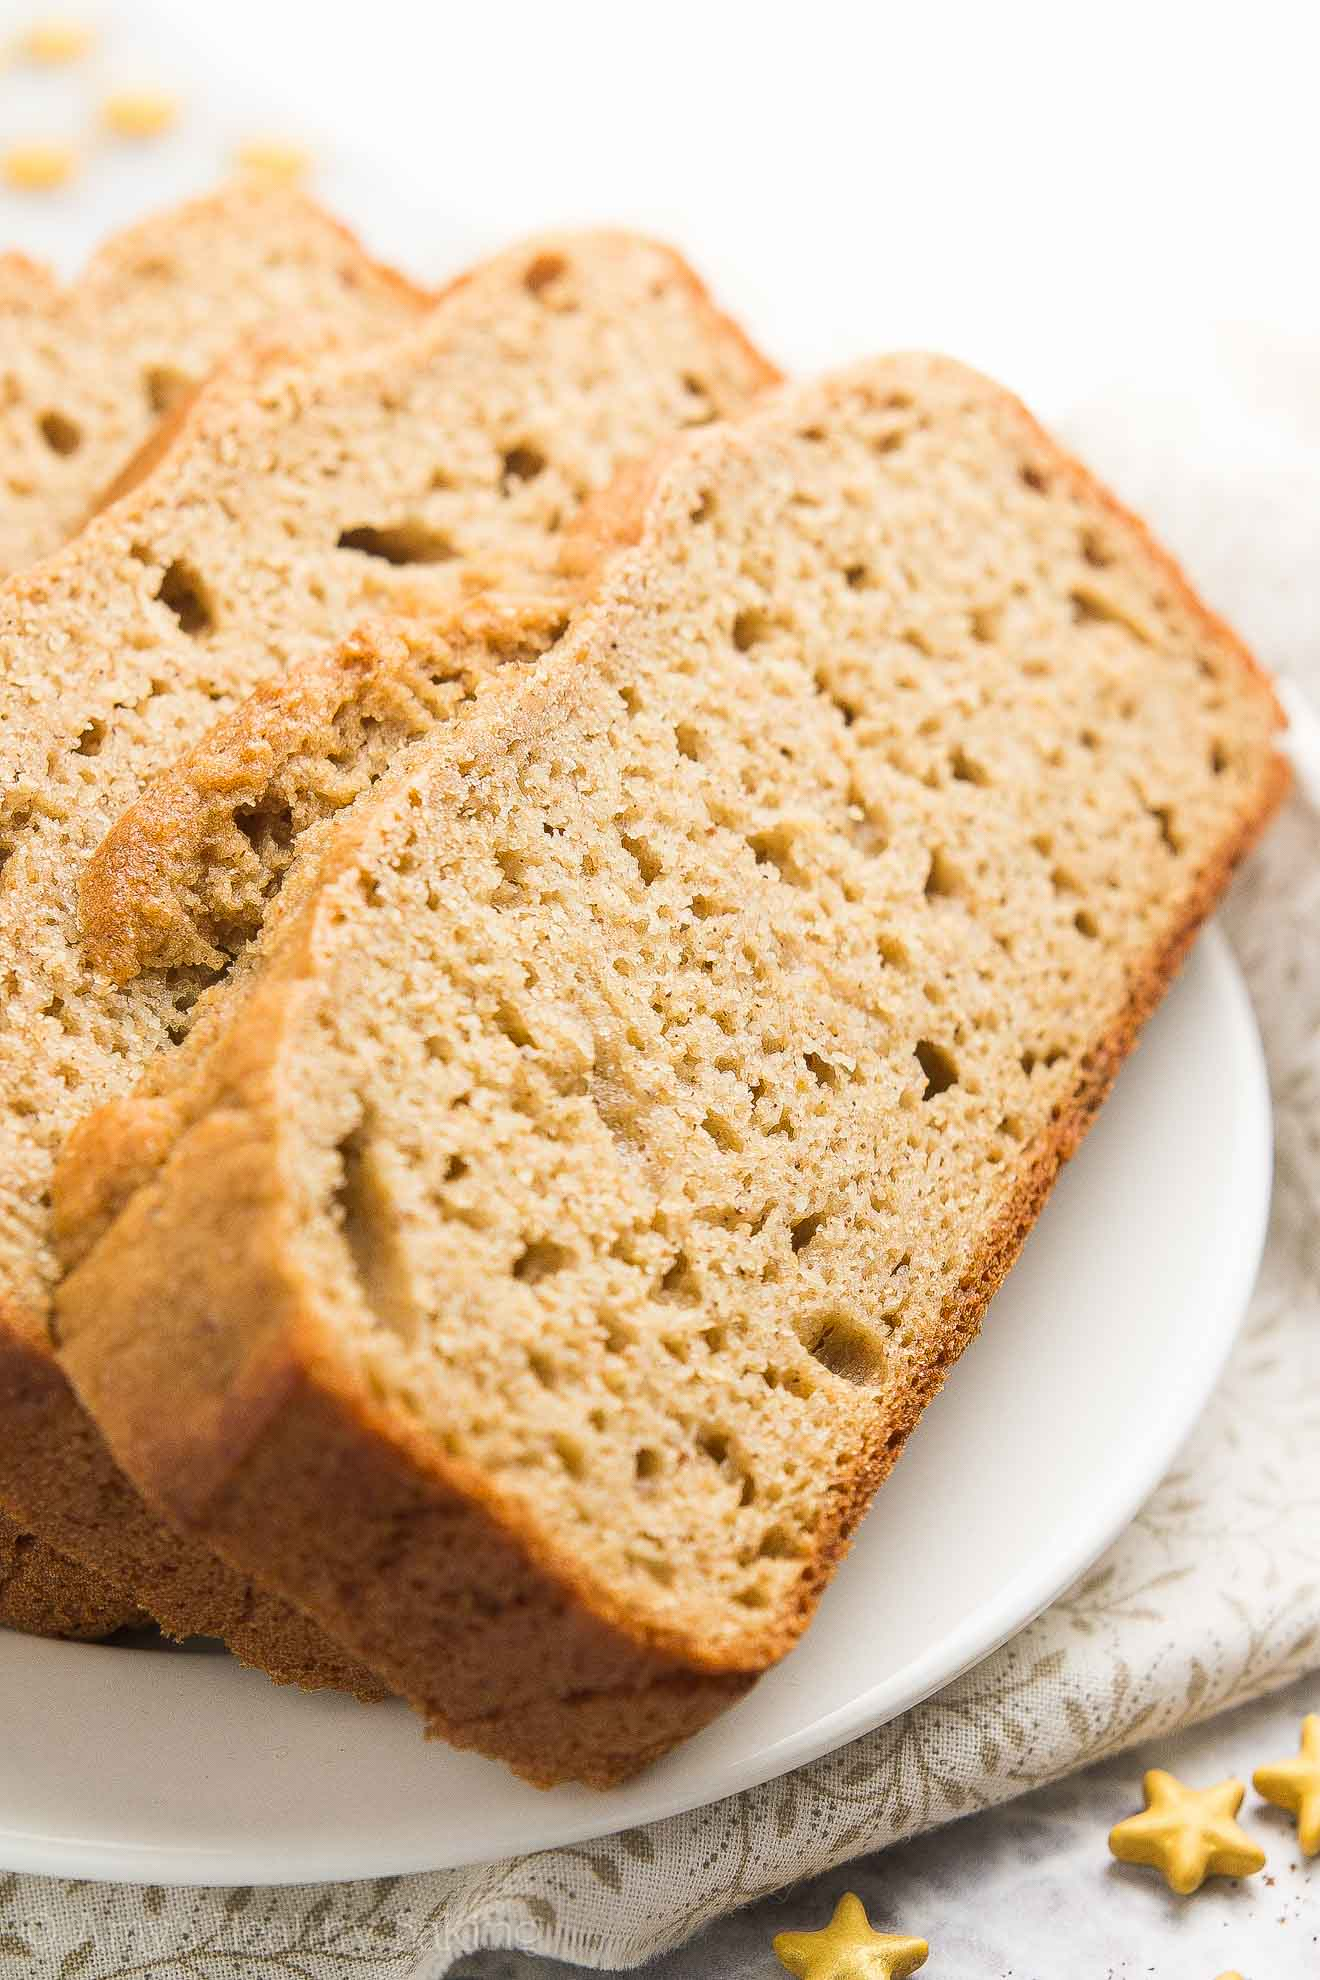 {HEALTHY!} Greek Yogurt Eggnog Pound Cake -- only 130 calories! This recipe is SO easy to make & full of sweet, cozy eggnog flavor! Perfect for Christmas & the holiday season! I make it multiple time every year -- it's THAT GOOD! #healthy #recipe #christmas #eggnog #cake #dessert #holidays